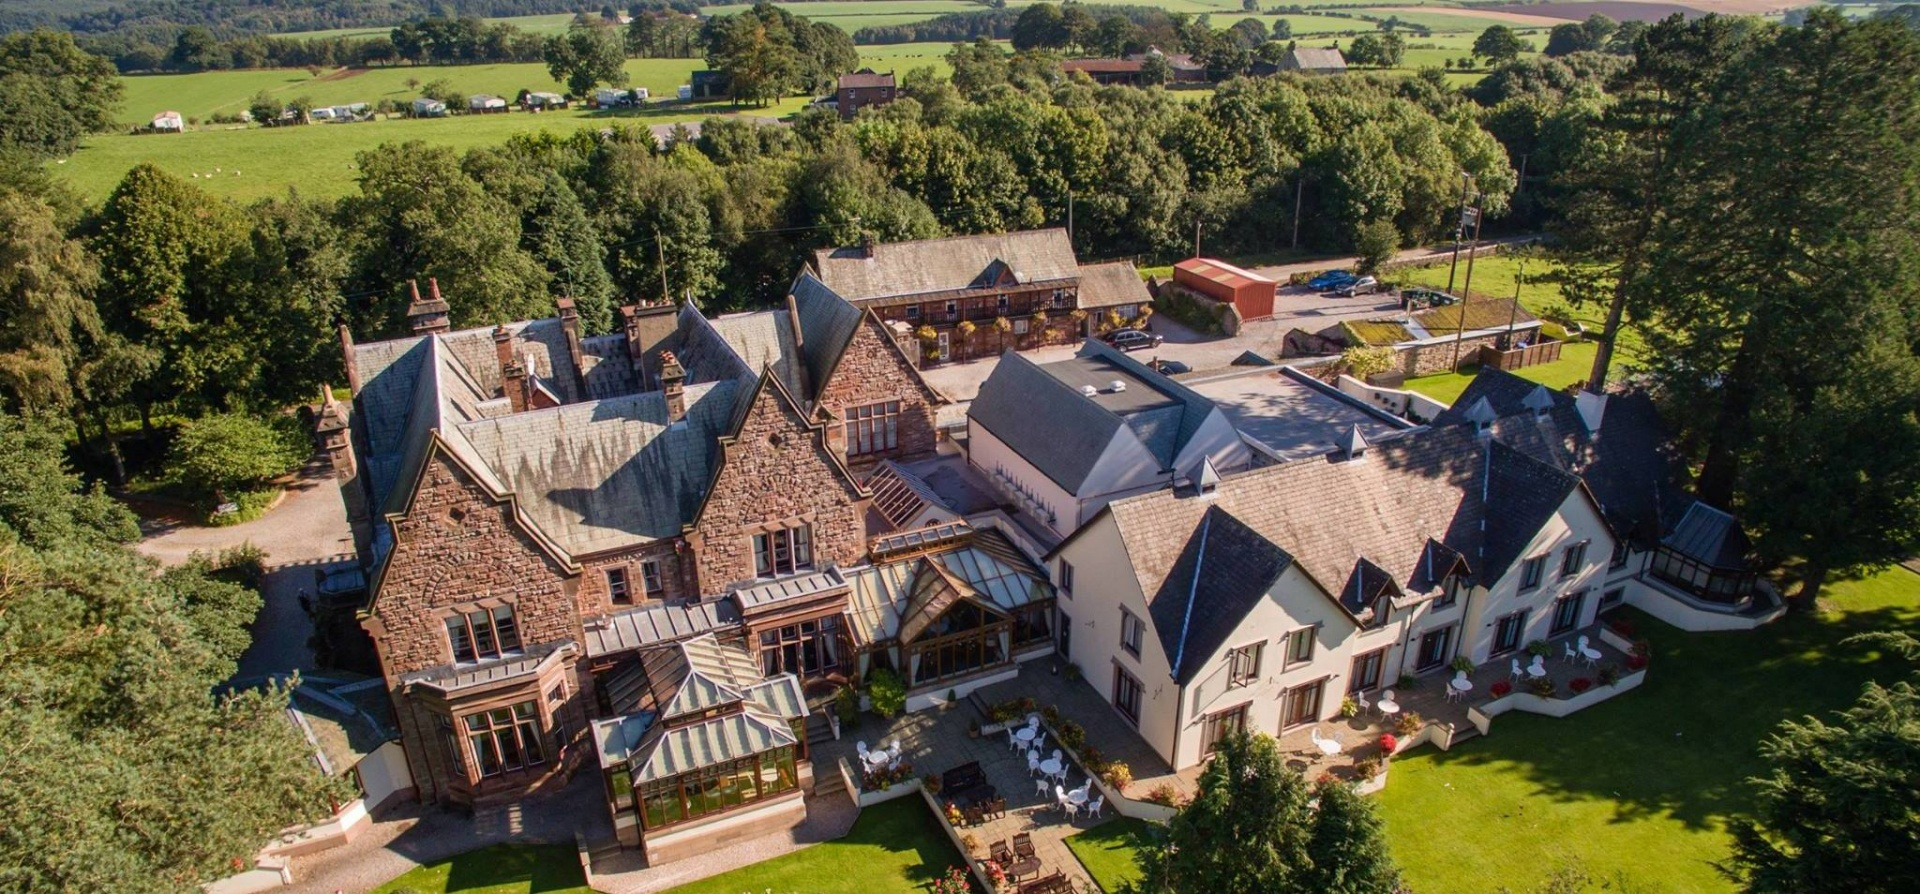 Indulgent Spa Day with Lunch - Cumbria-8